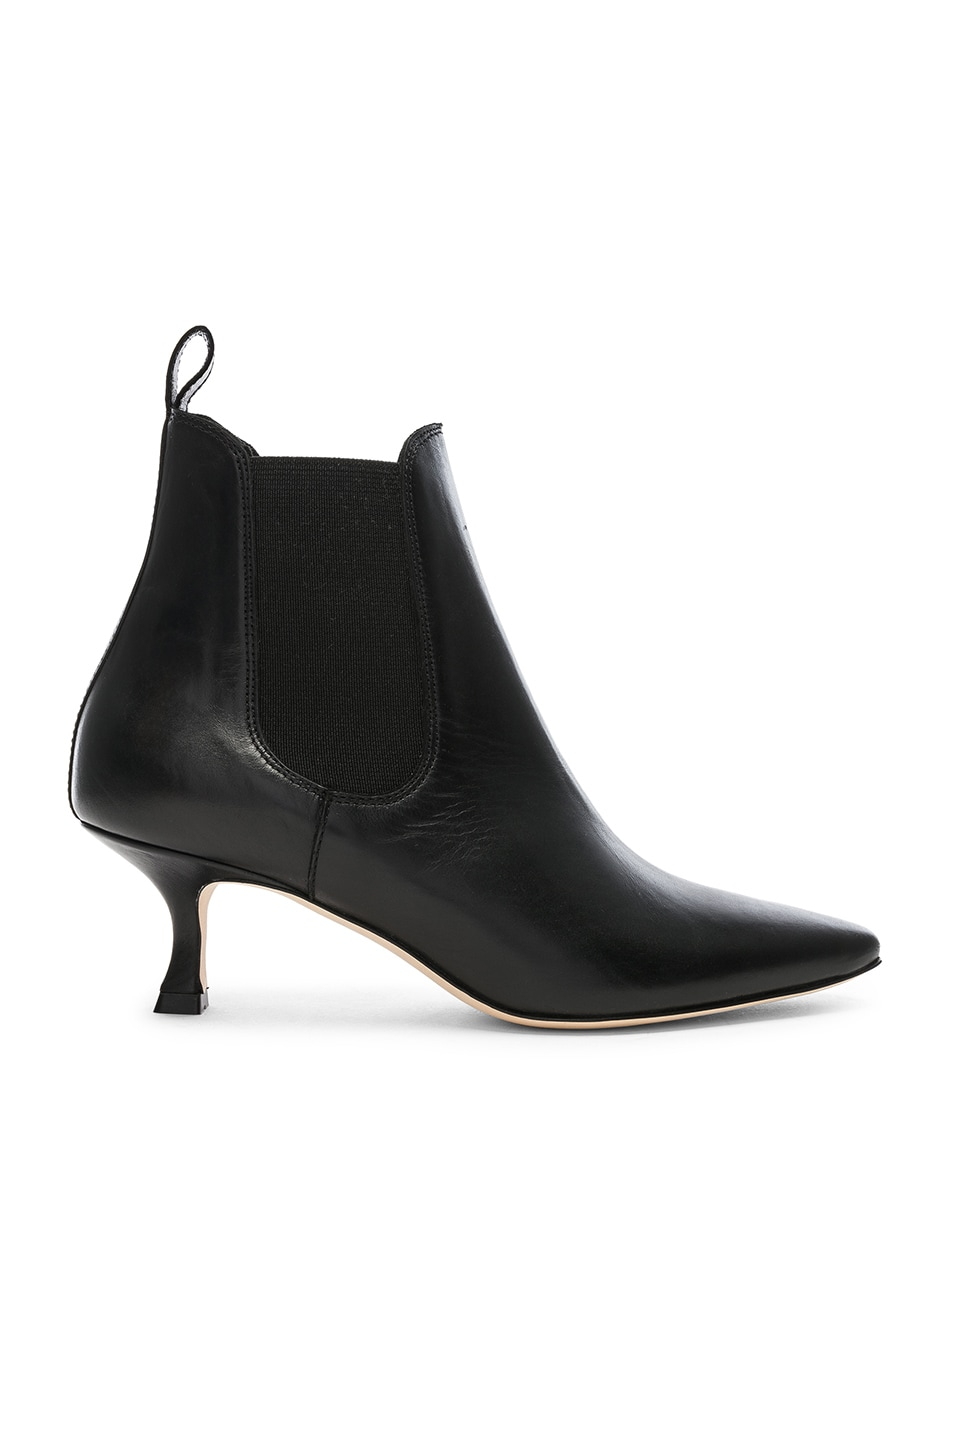 Image 1 of Manolo Blahnik Leather Chelsa 50 Boots in Black